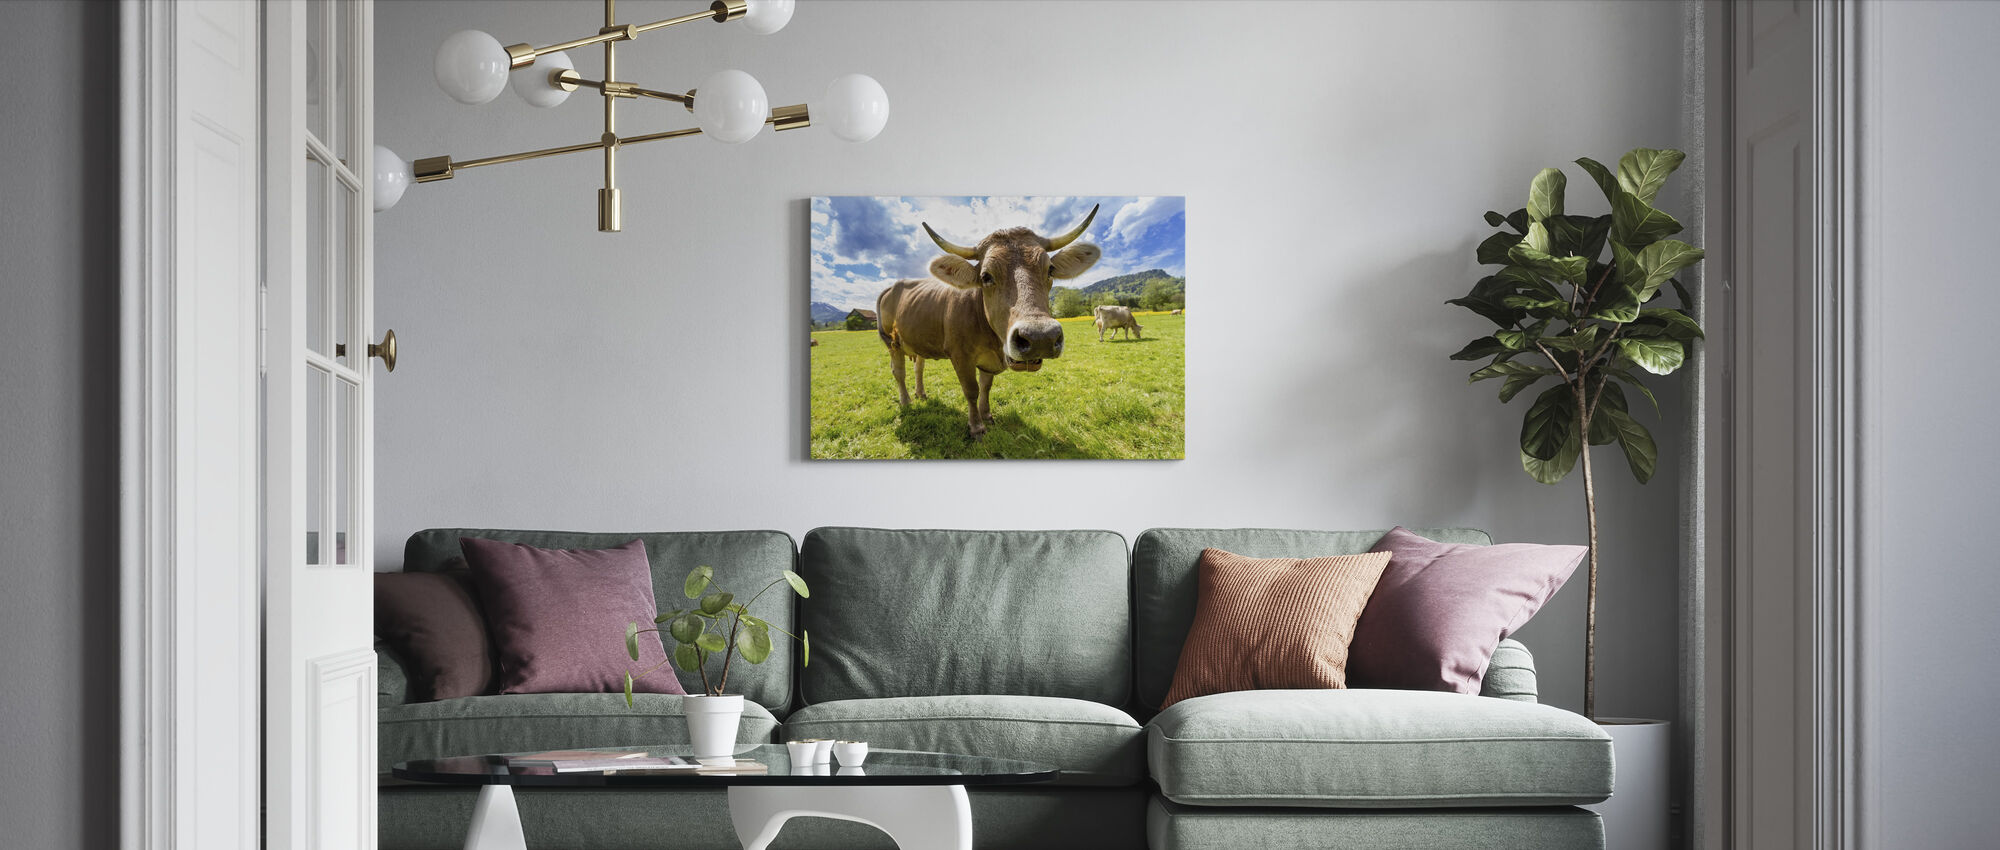 Cow Up Close - Canvas print - Living Room